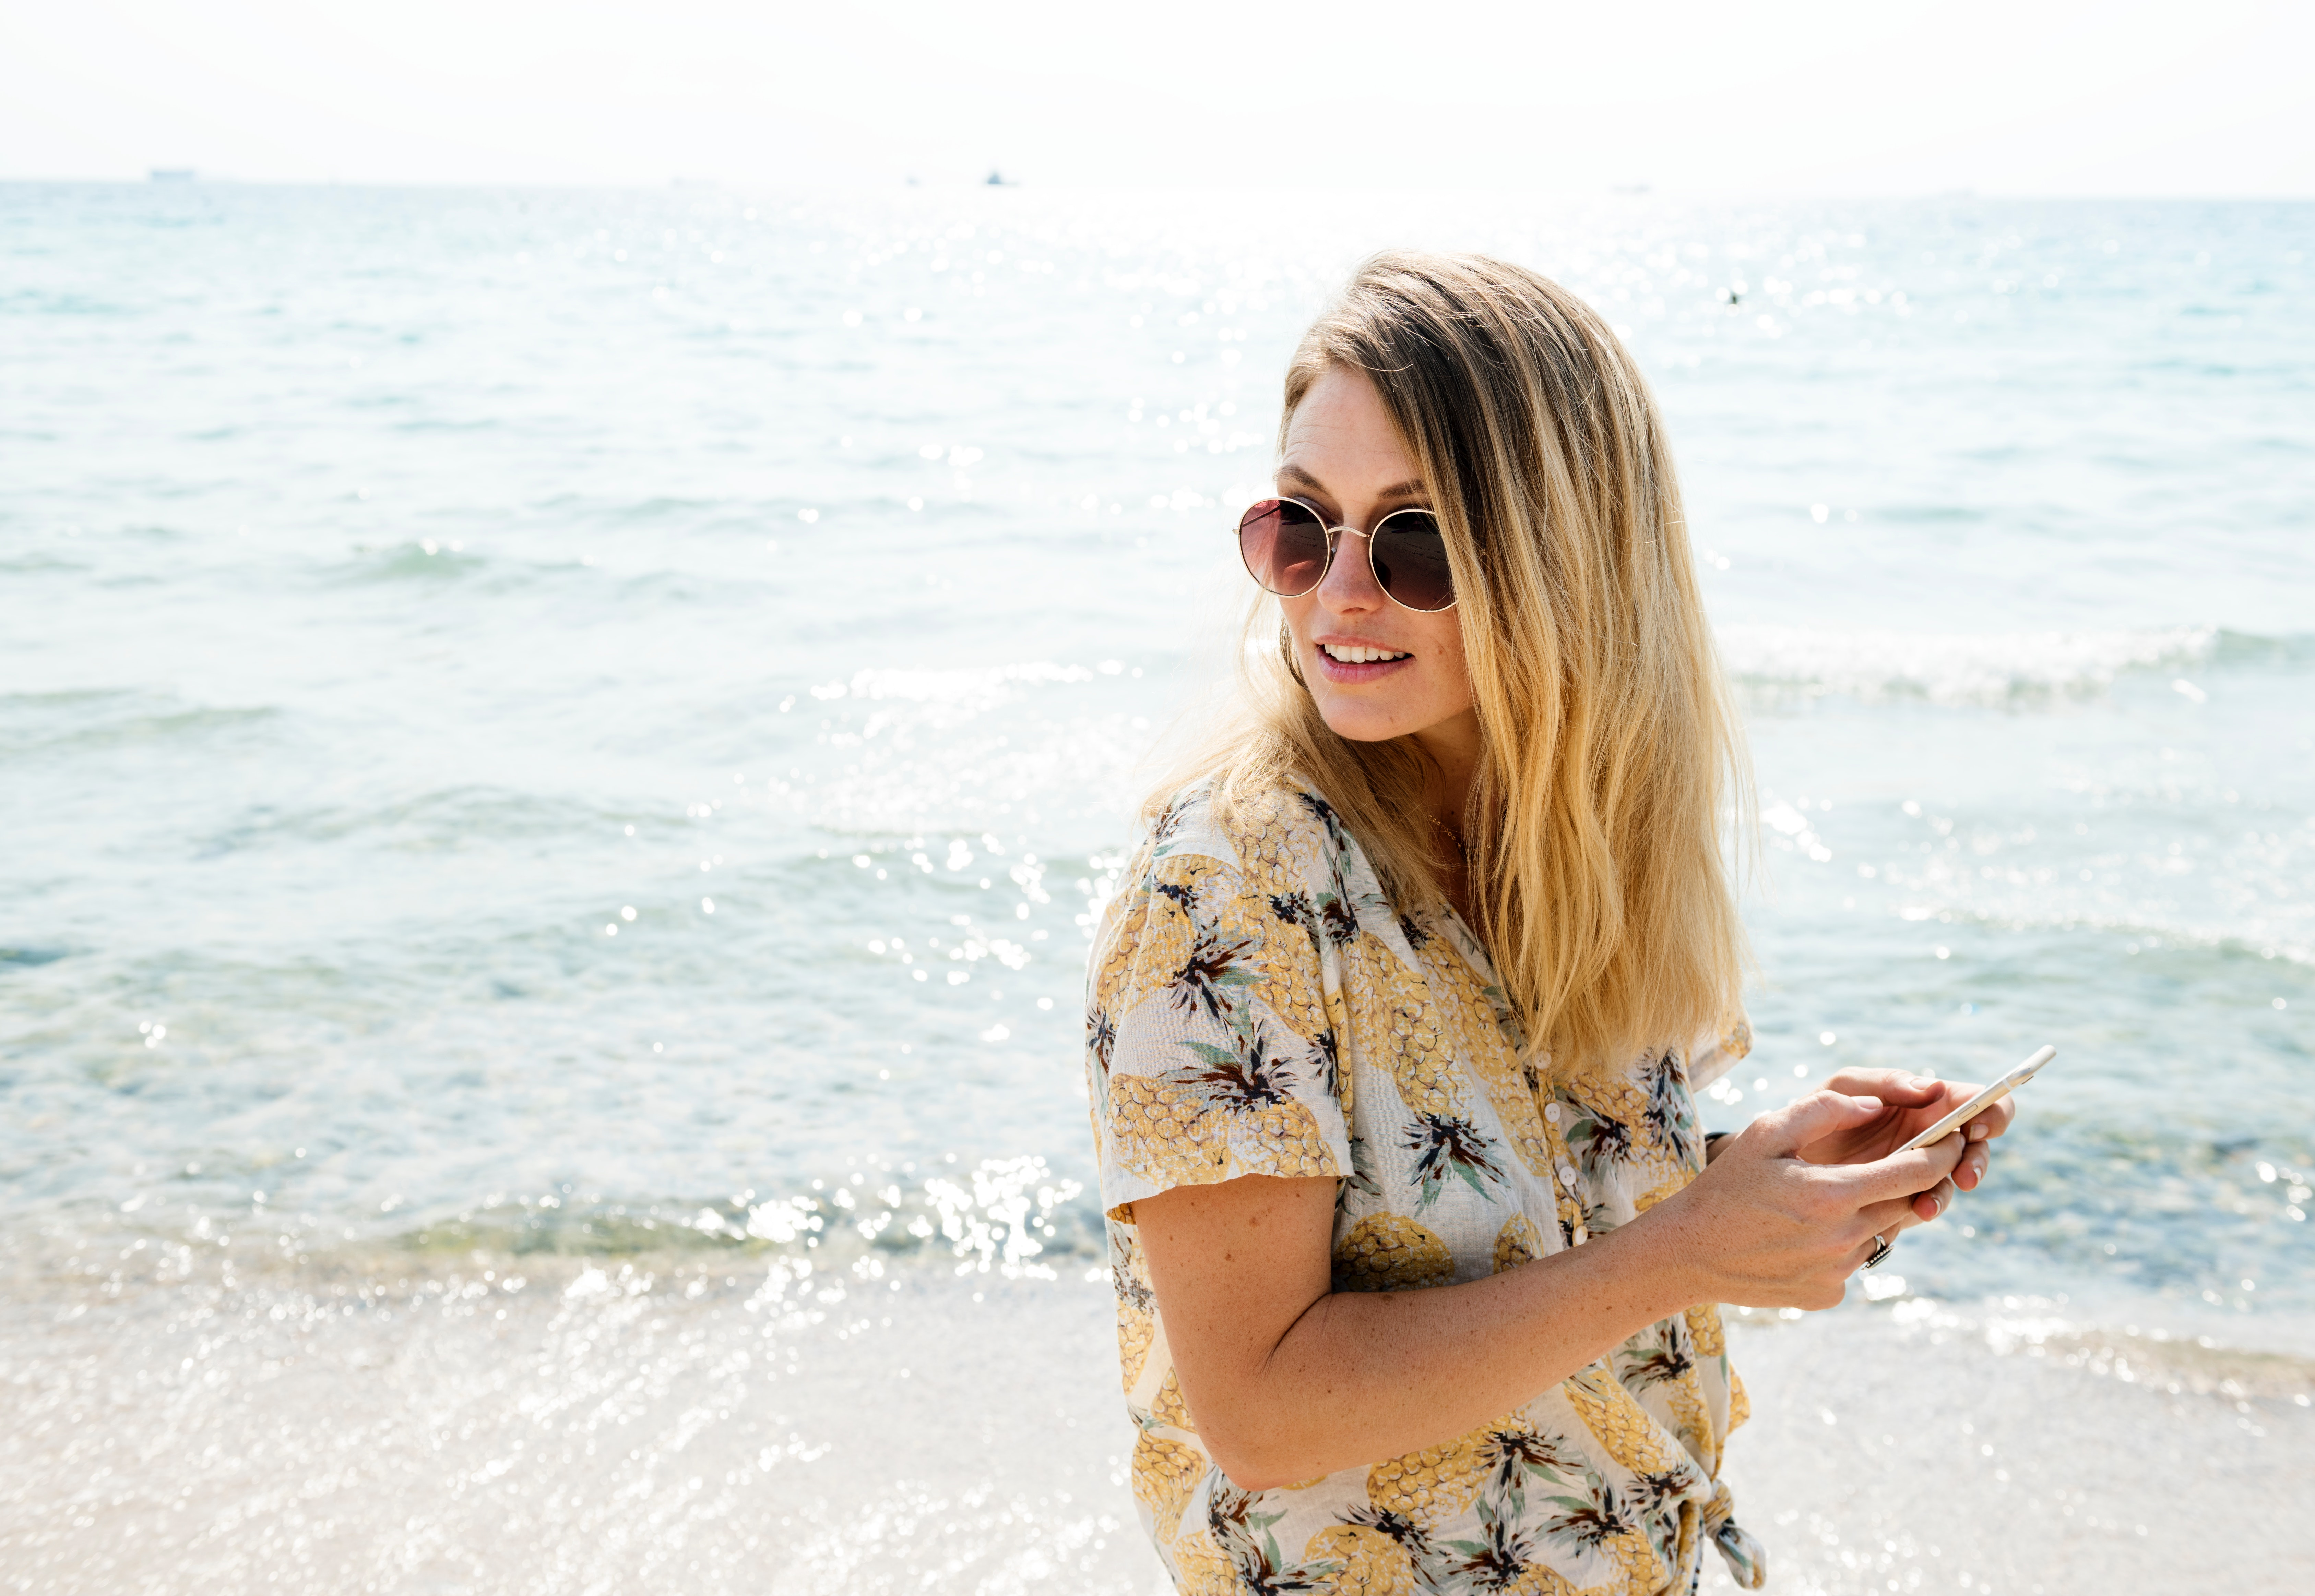 Woman in black yellow and white floral button-up shirt holding smartphone wearing aviator sunglasses near body of water photo